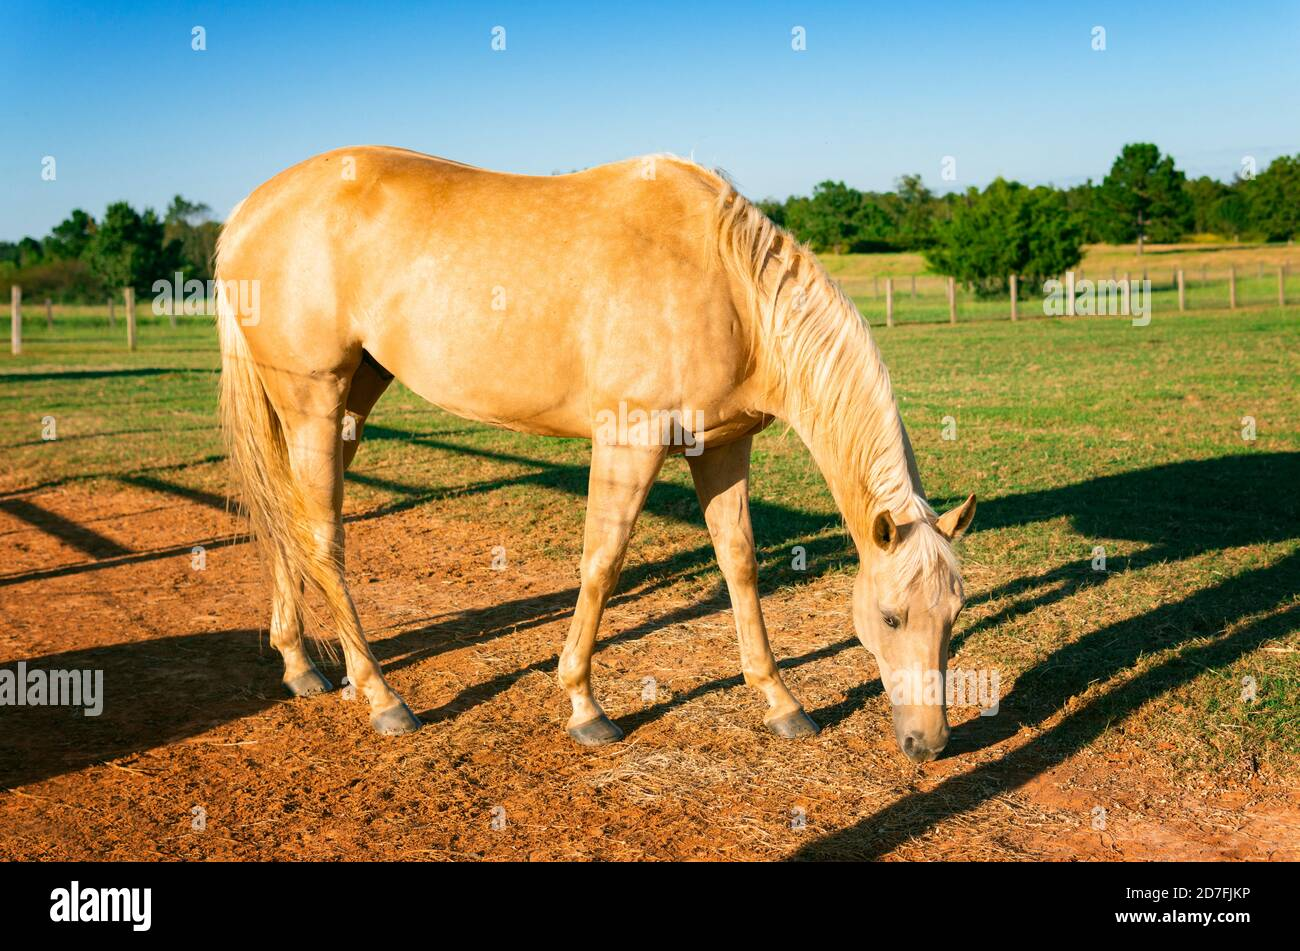 Golden Palomino High Resolution Stock Photography And Images Alamy